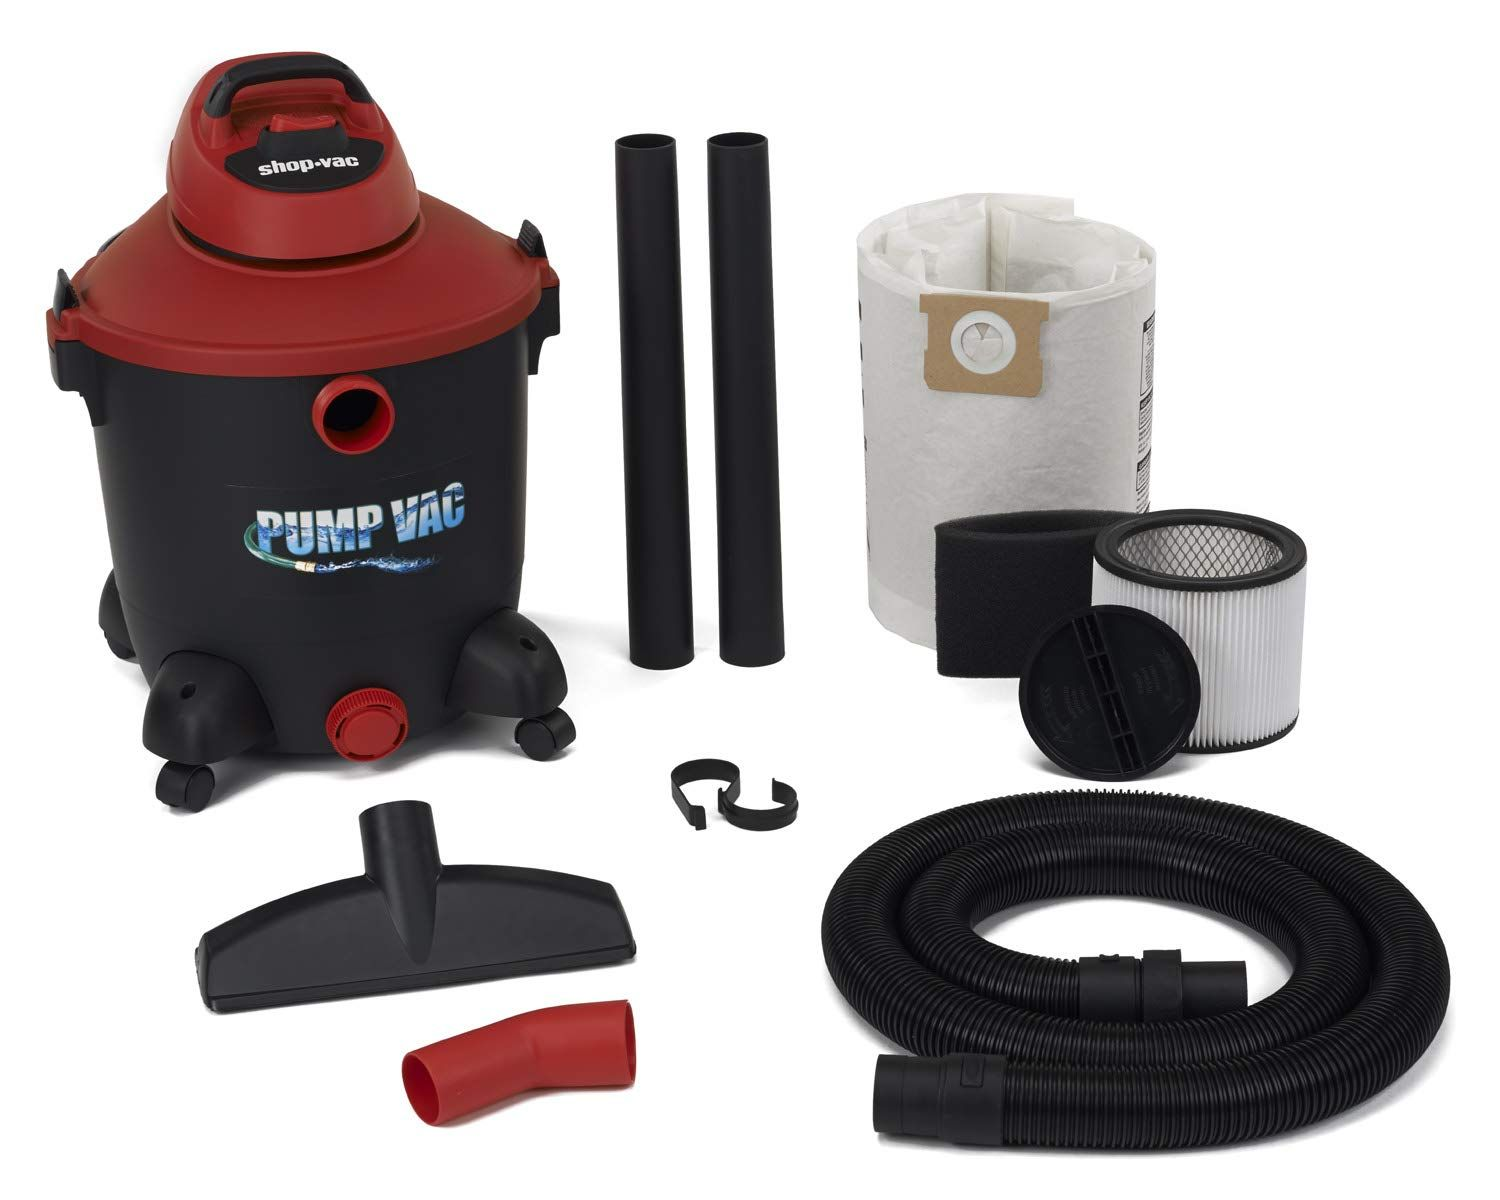 Shop Vac 5821200 12 Gal 5.0 PHP Wet Dry Vacuum with built